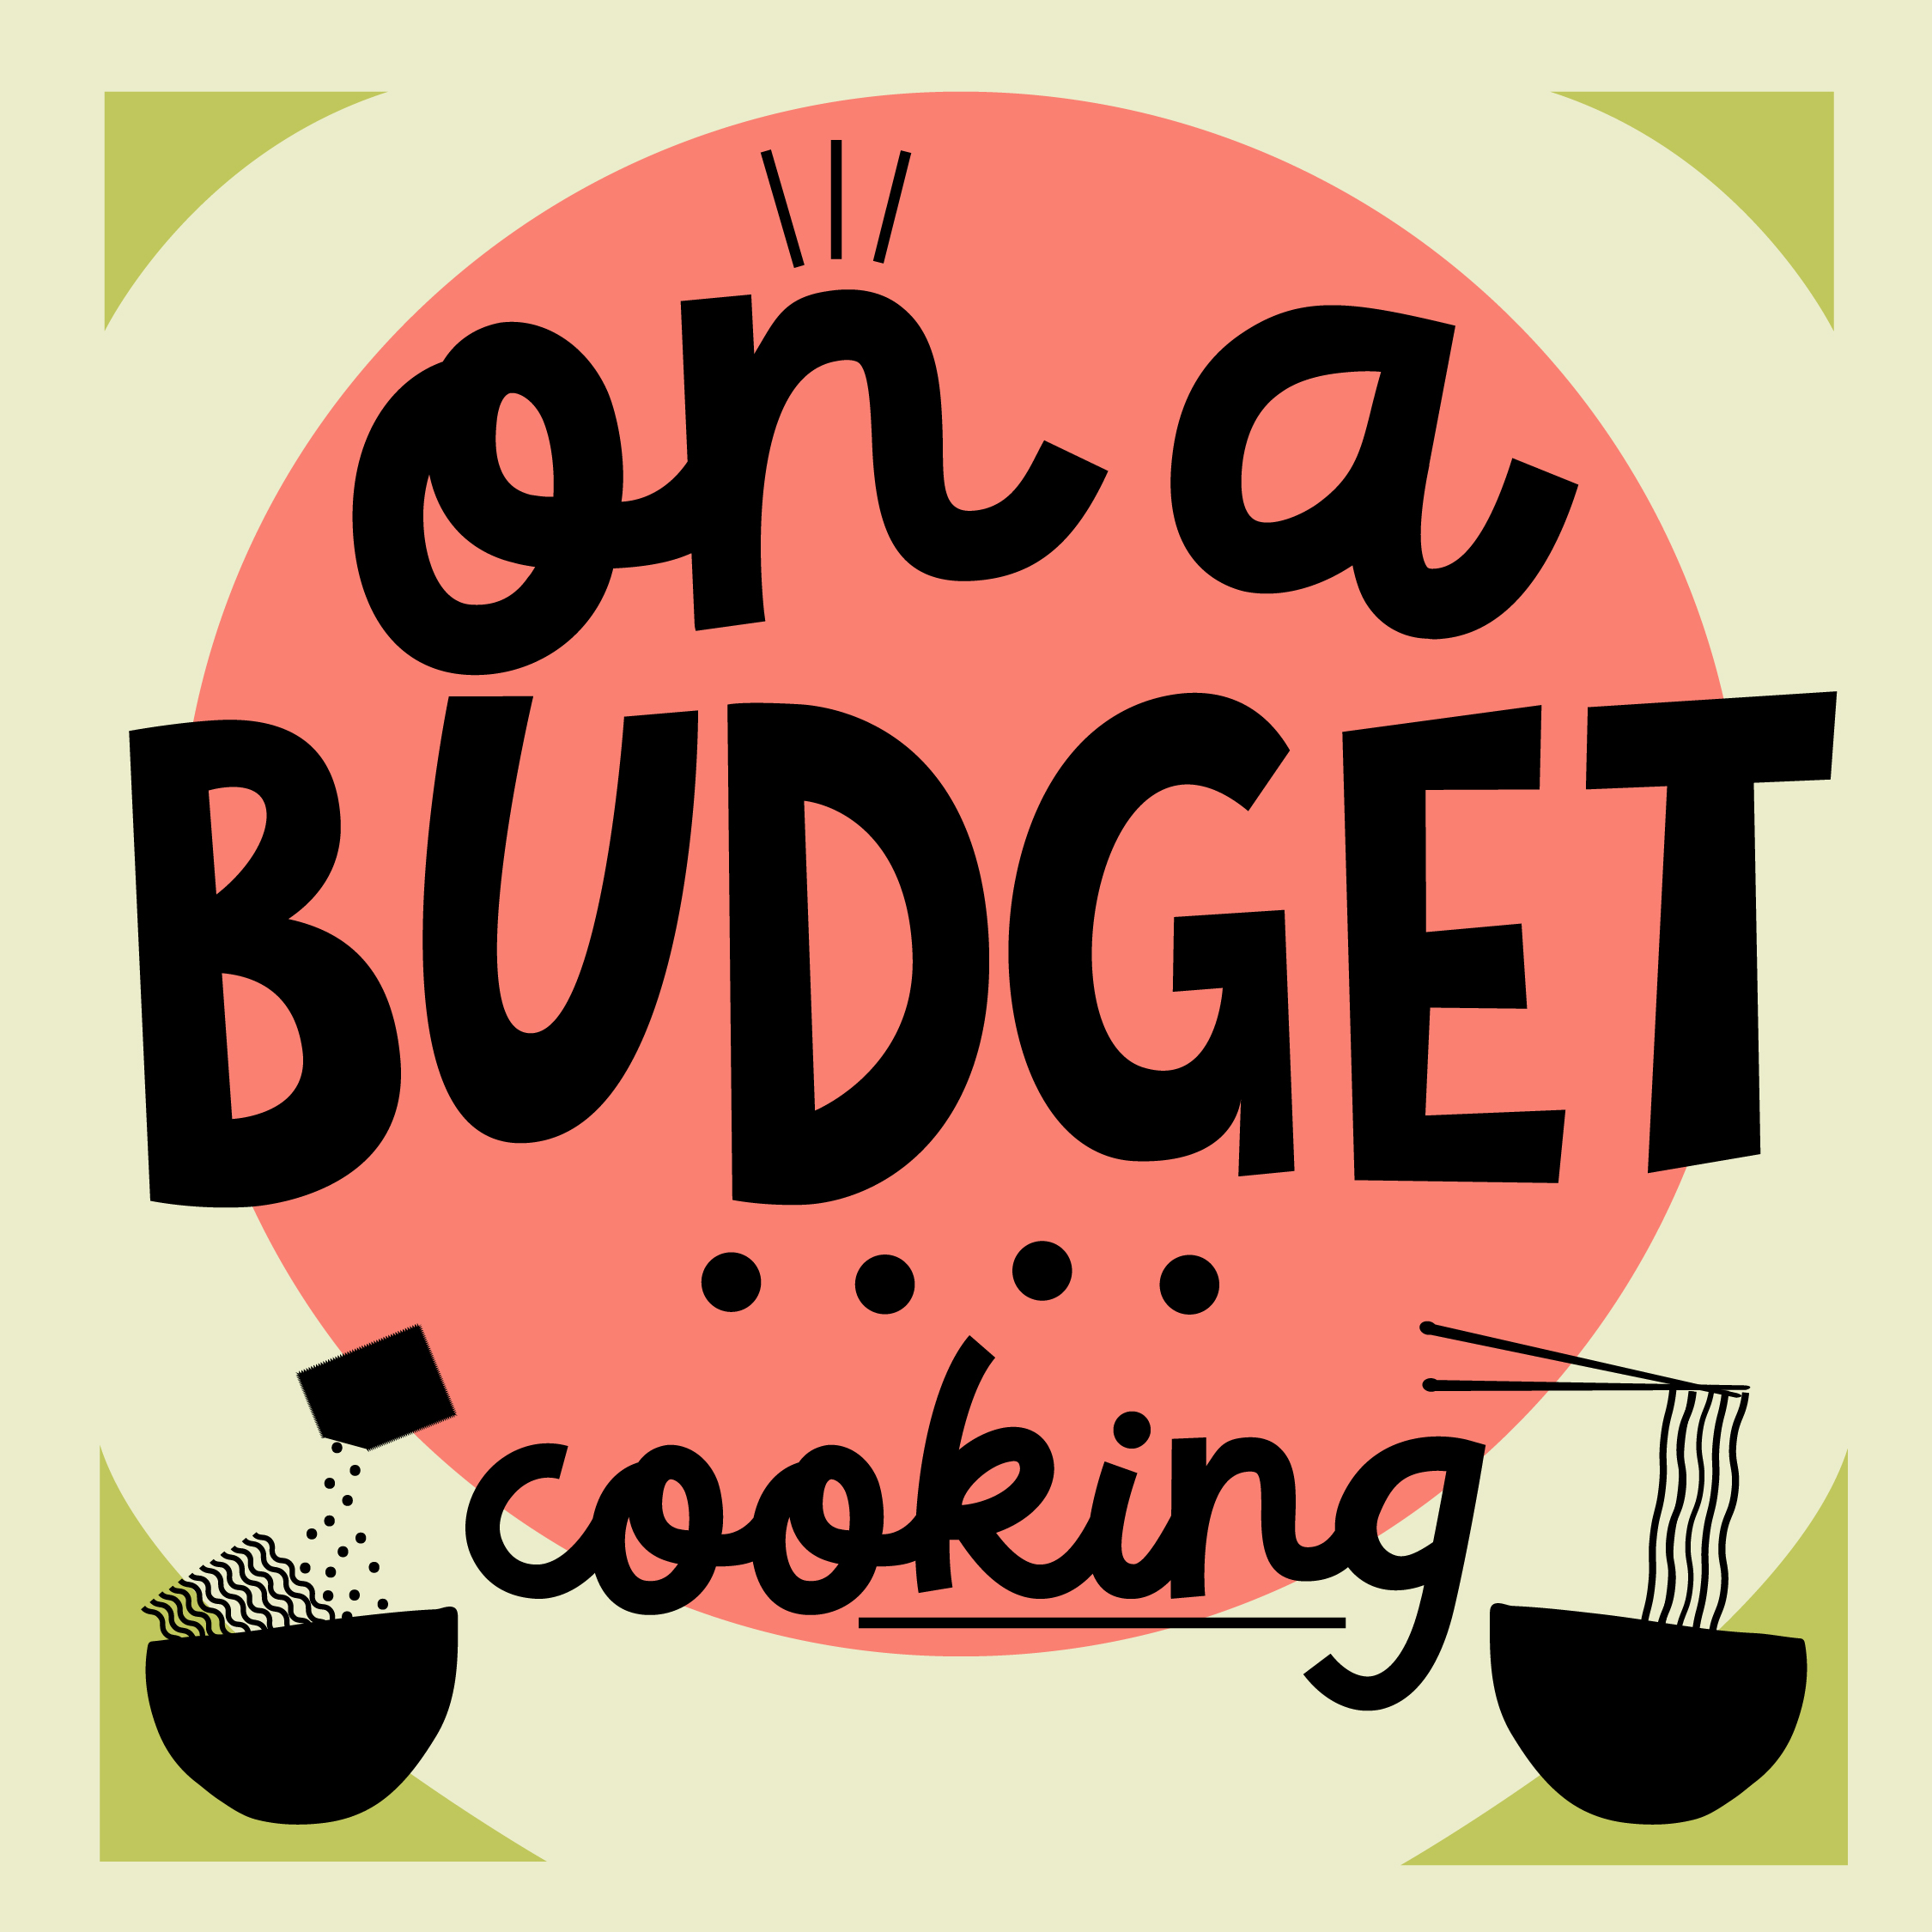 Image of Cooking on a Budget